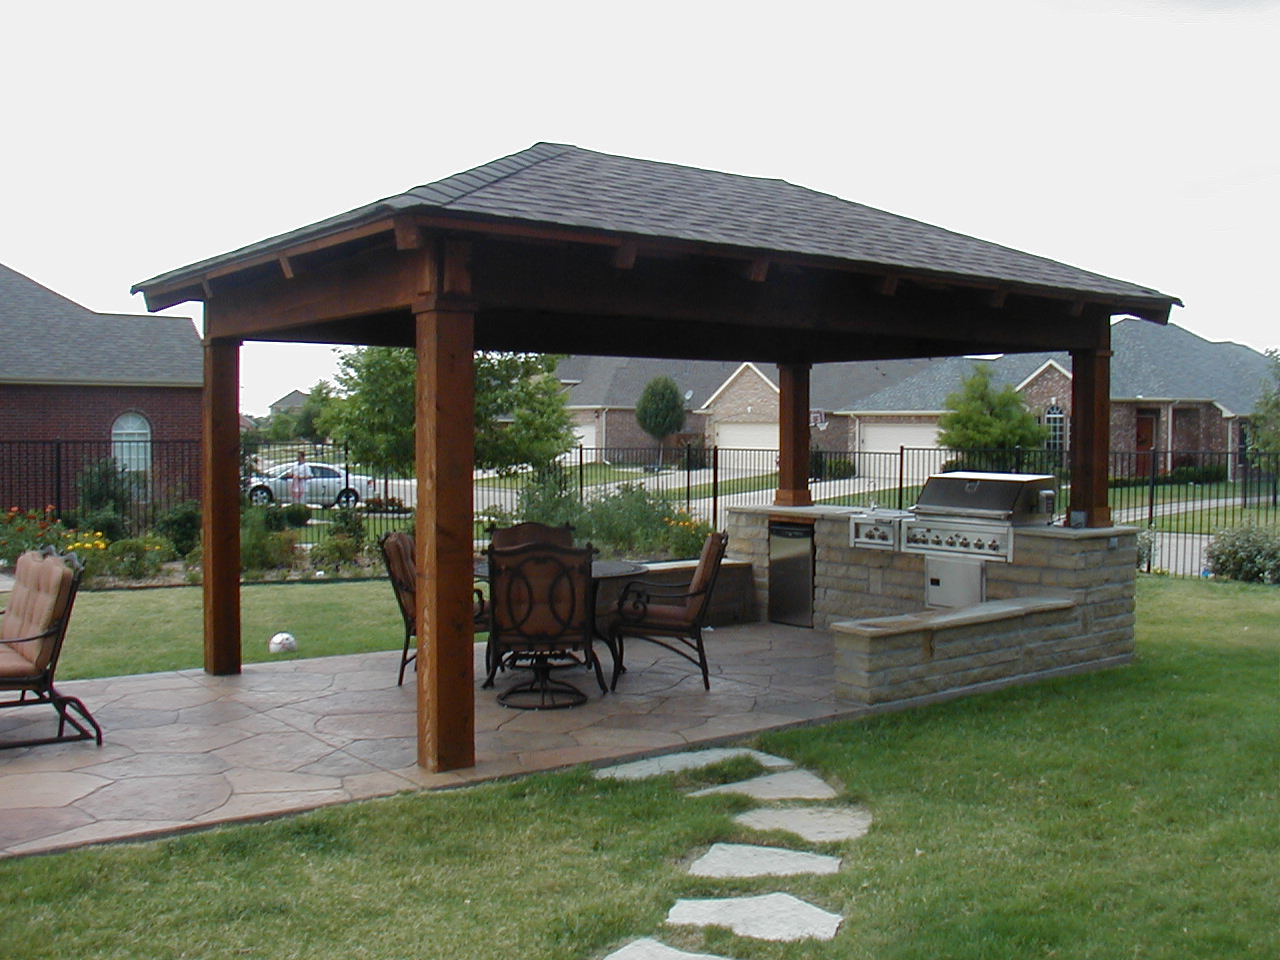 Outdoor Pavilion Plans That Offer a Pleasant Relaxing Time ... on Outdoor Patio Pavilion id=29936